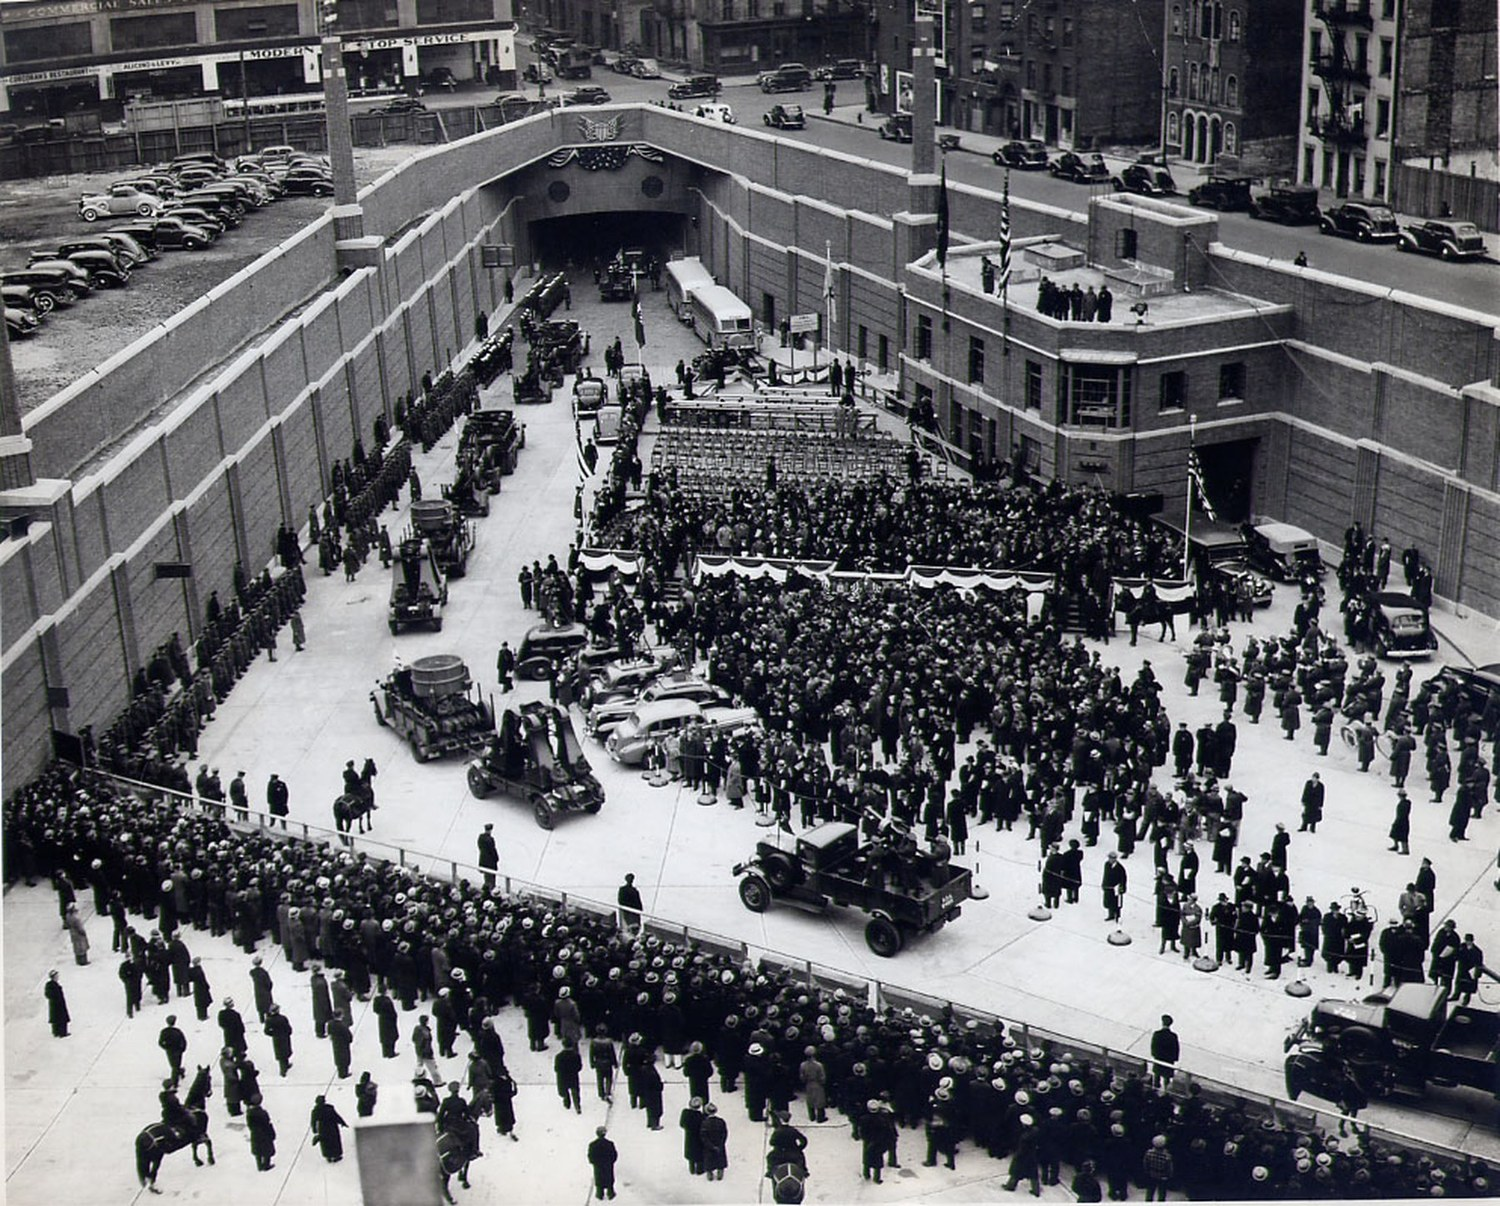 Lincoln Tunnel, Opening Day, December 22nd, 1937